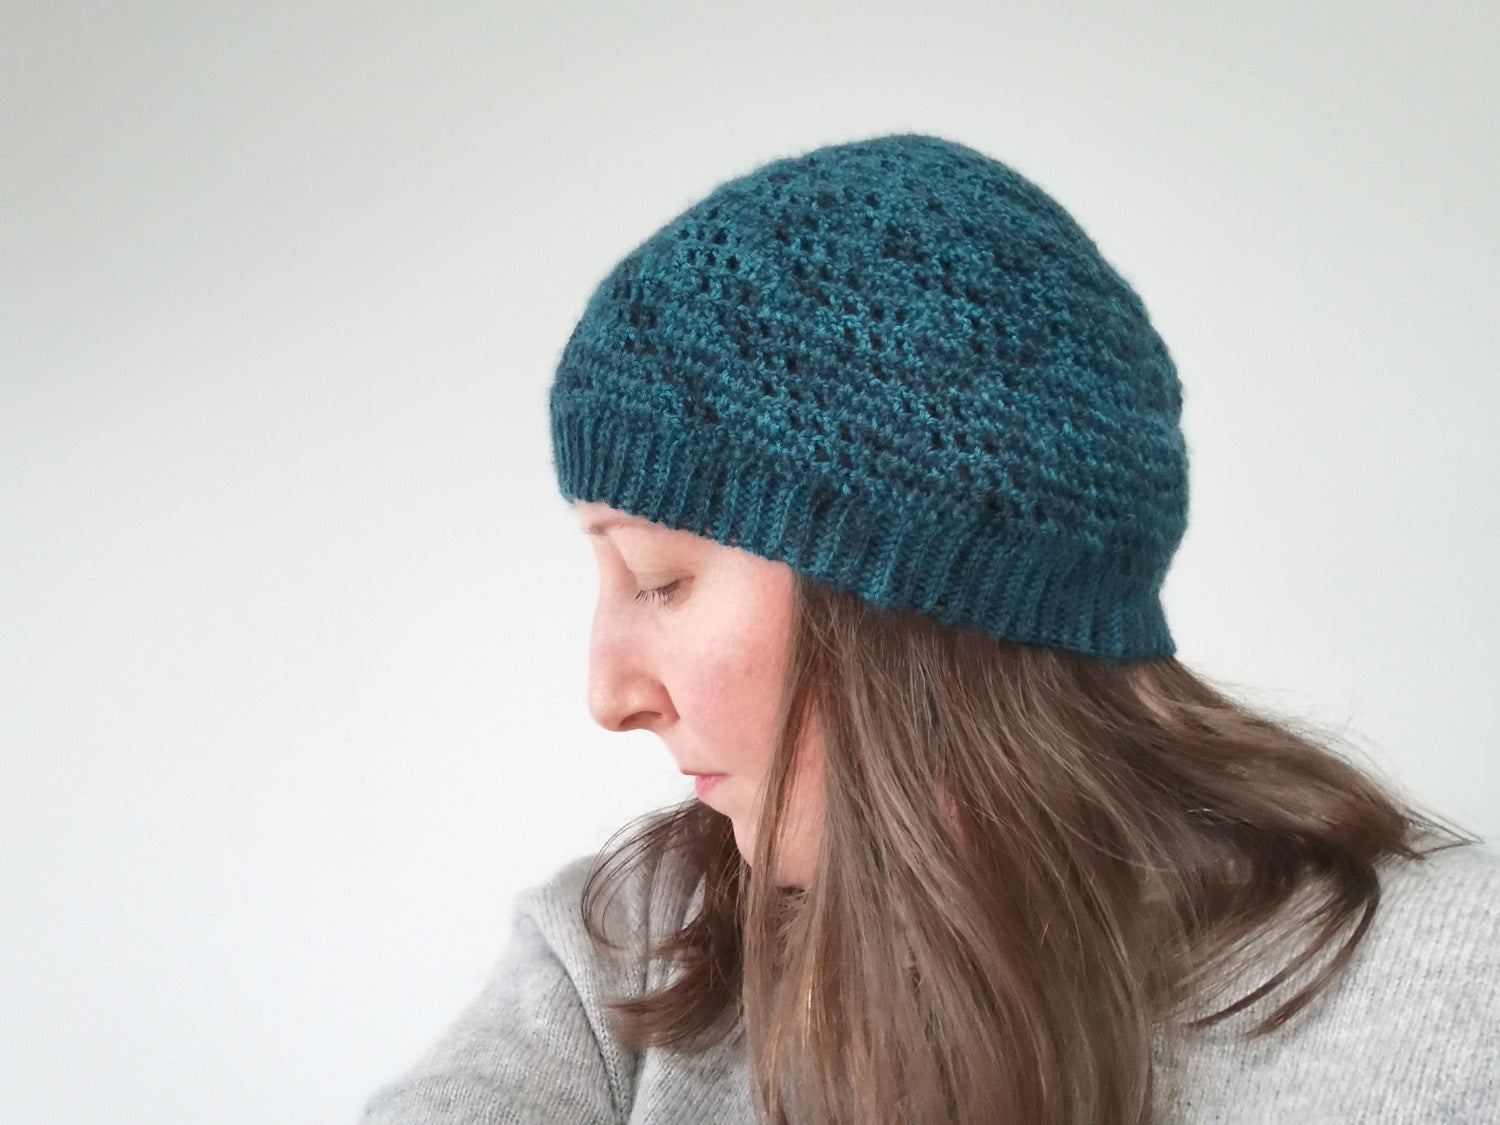 Me wearing my Positivity Spiral Hat pattern.  Its a deep teal variegated colour with lace squares that move around in a spiral.